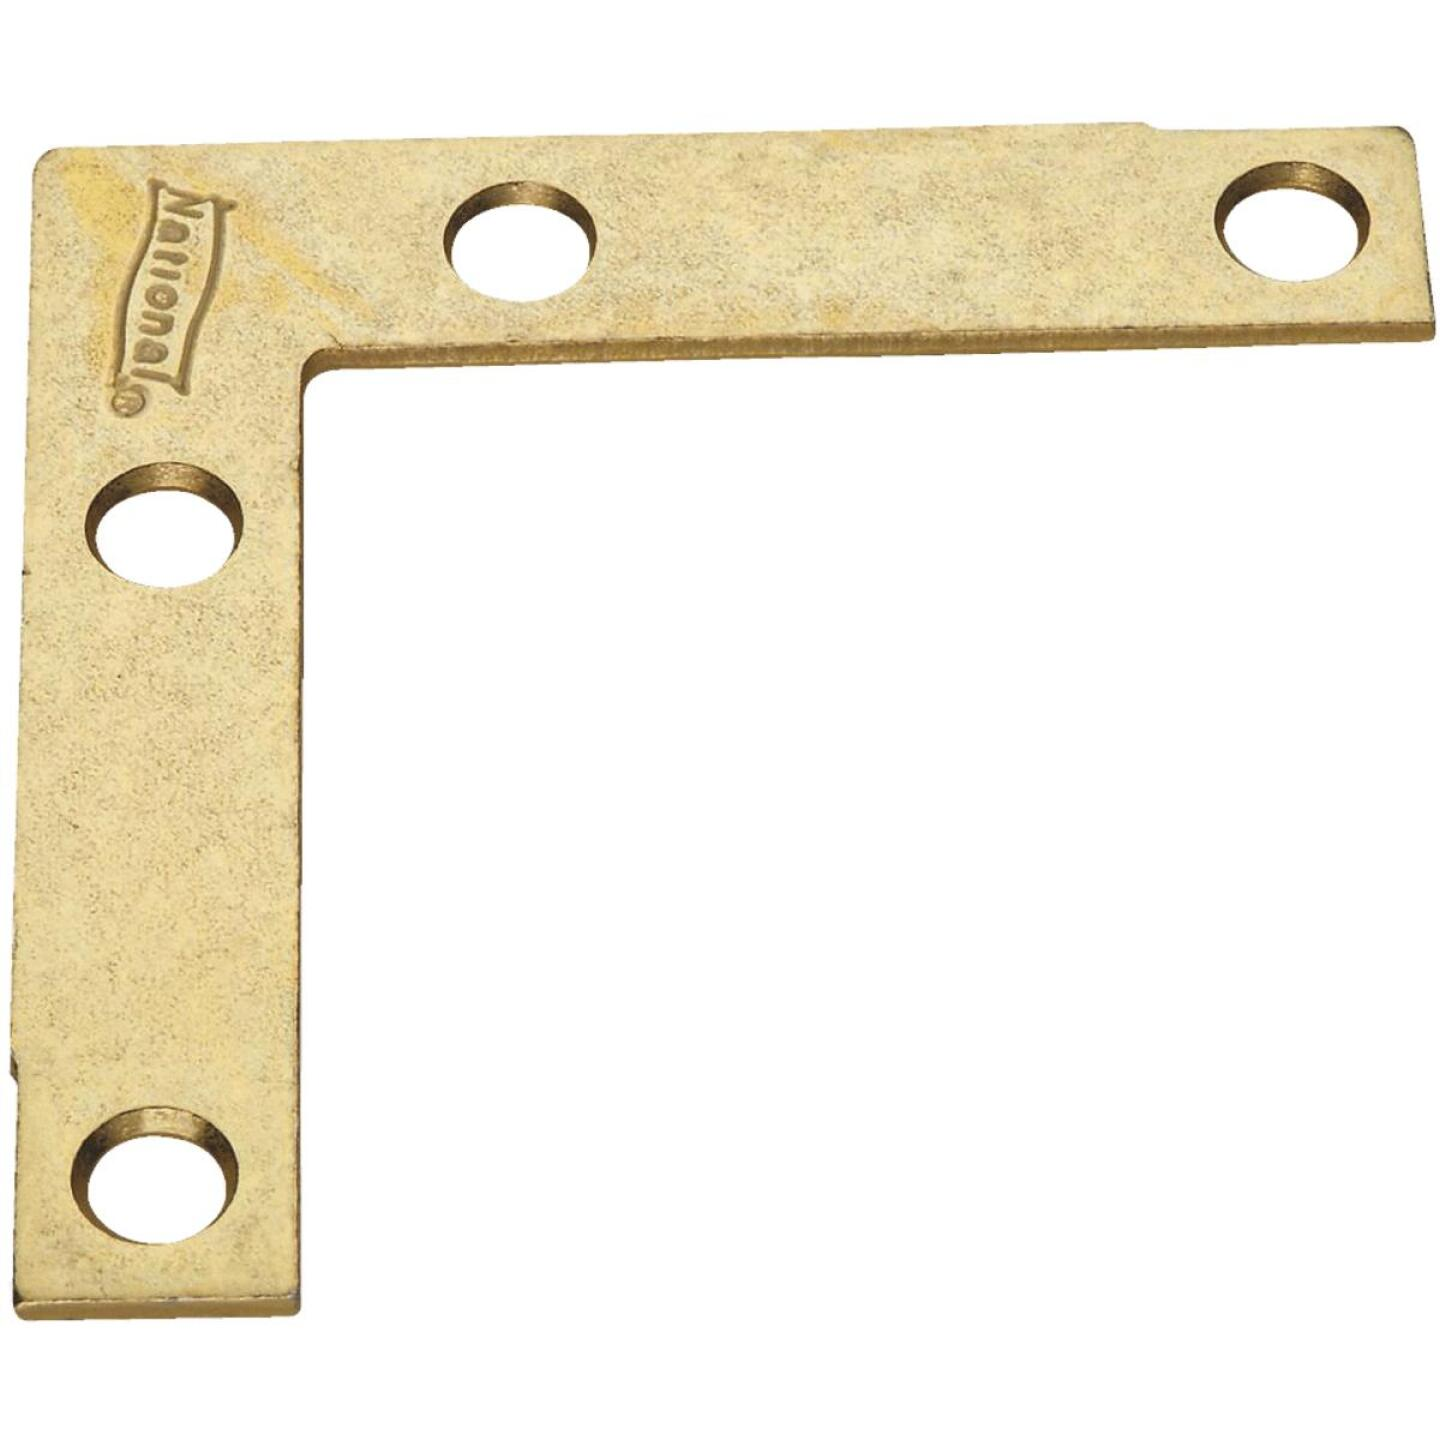 National Catalog 117 2-1/2 In. x 3/8 In. Brass Flat Corner Iron (4-Count) Image 1